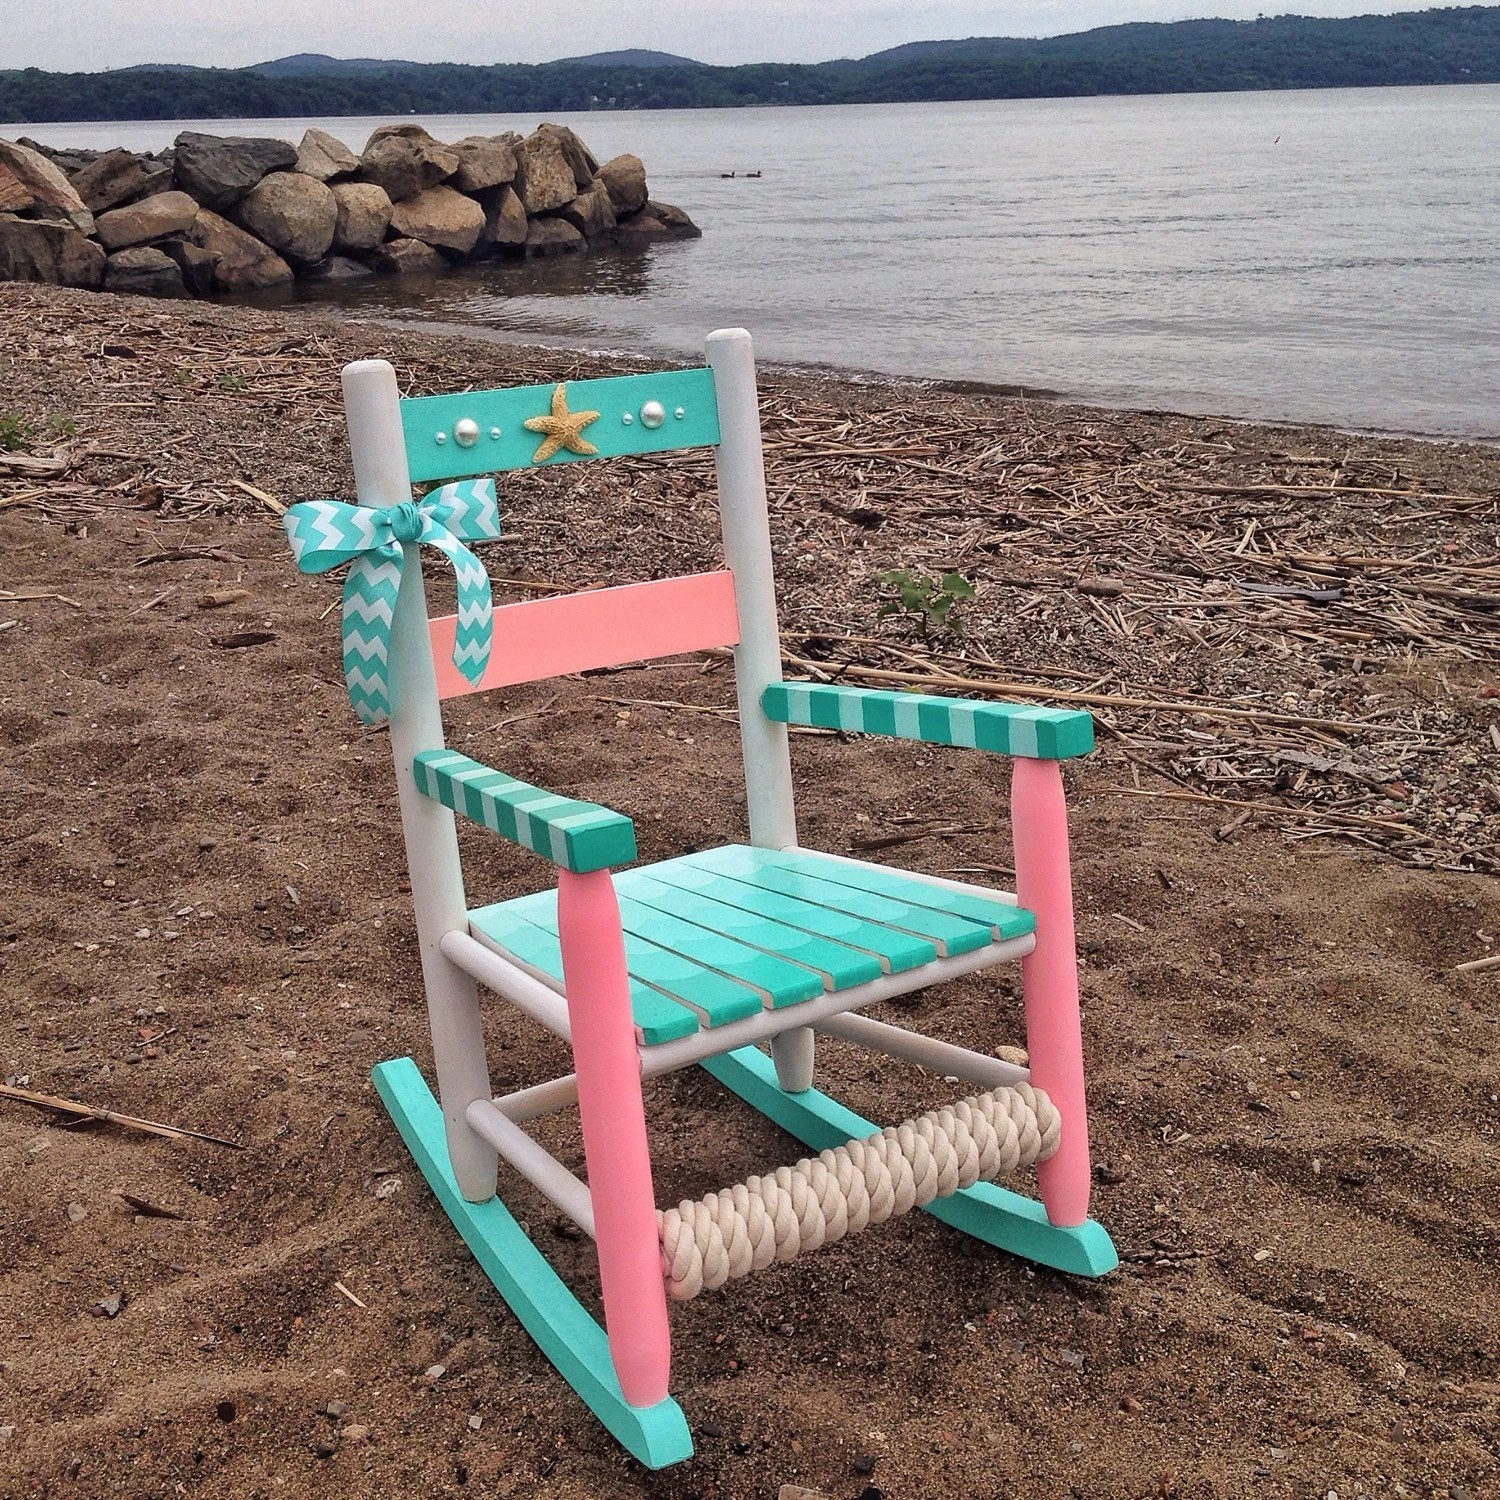 little rocking chairs for toddlers tennis umpire chair plans hand painted kids nautical